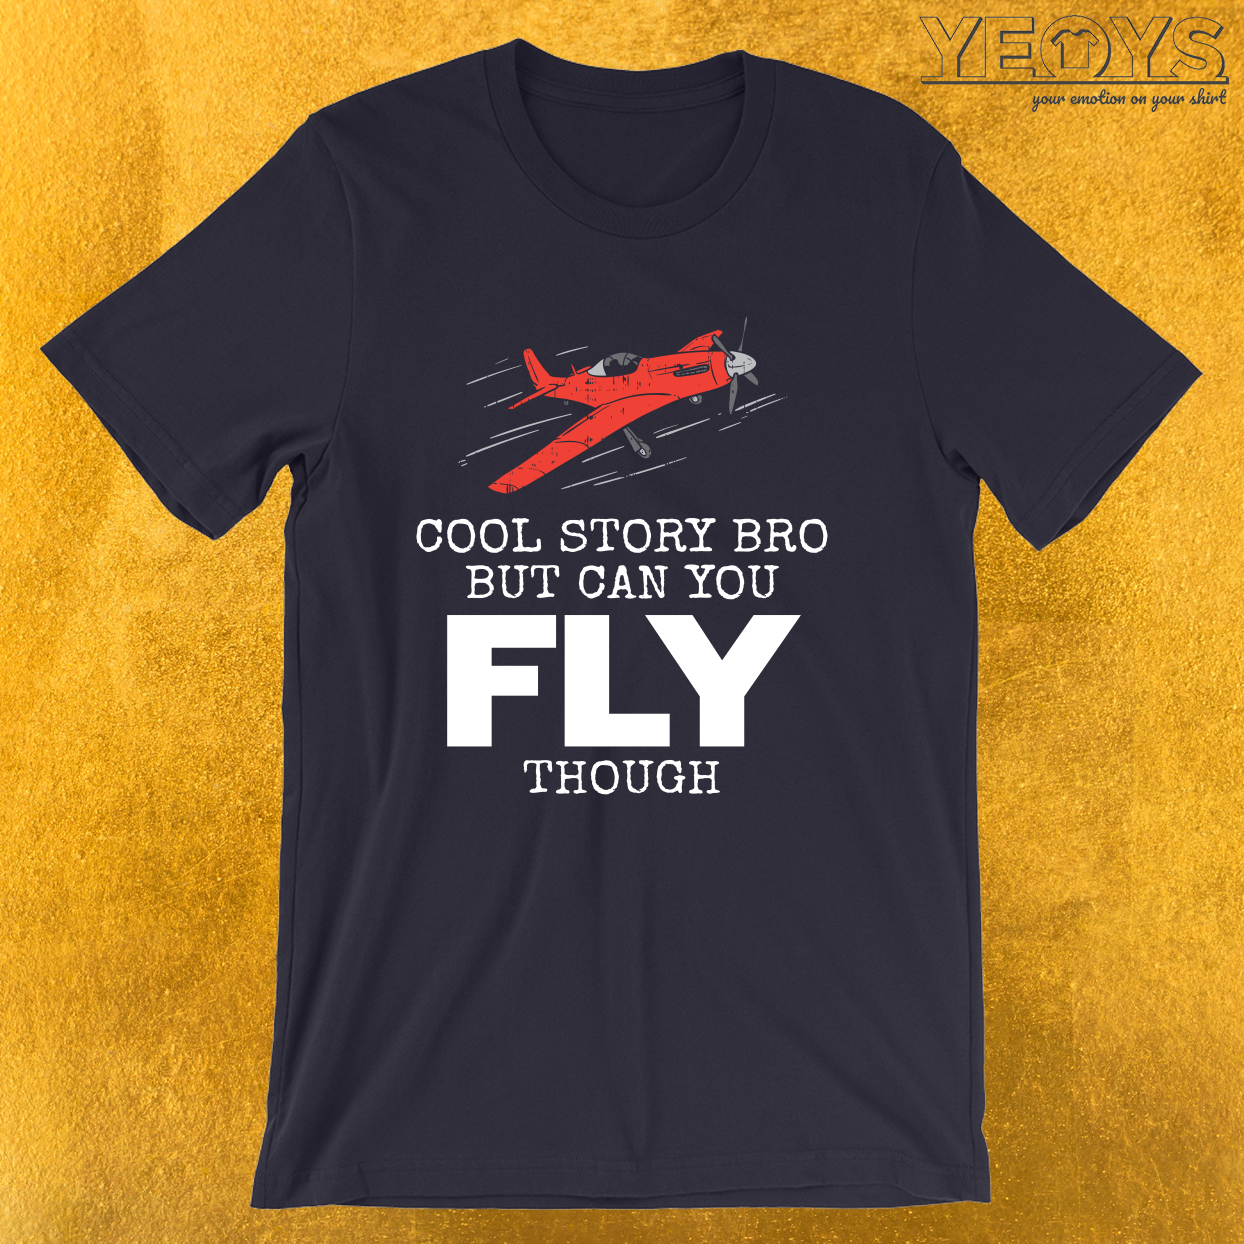 Cool Story Bro But Can You Fly Though? – Aviation Quote Tee